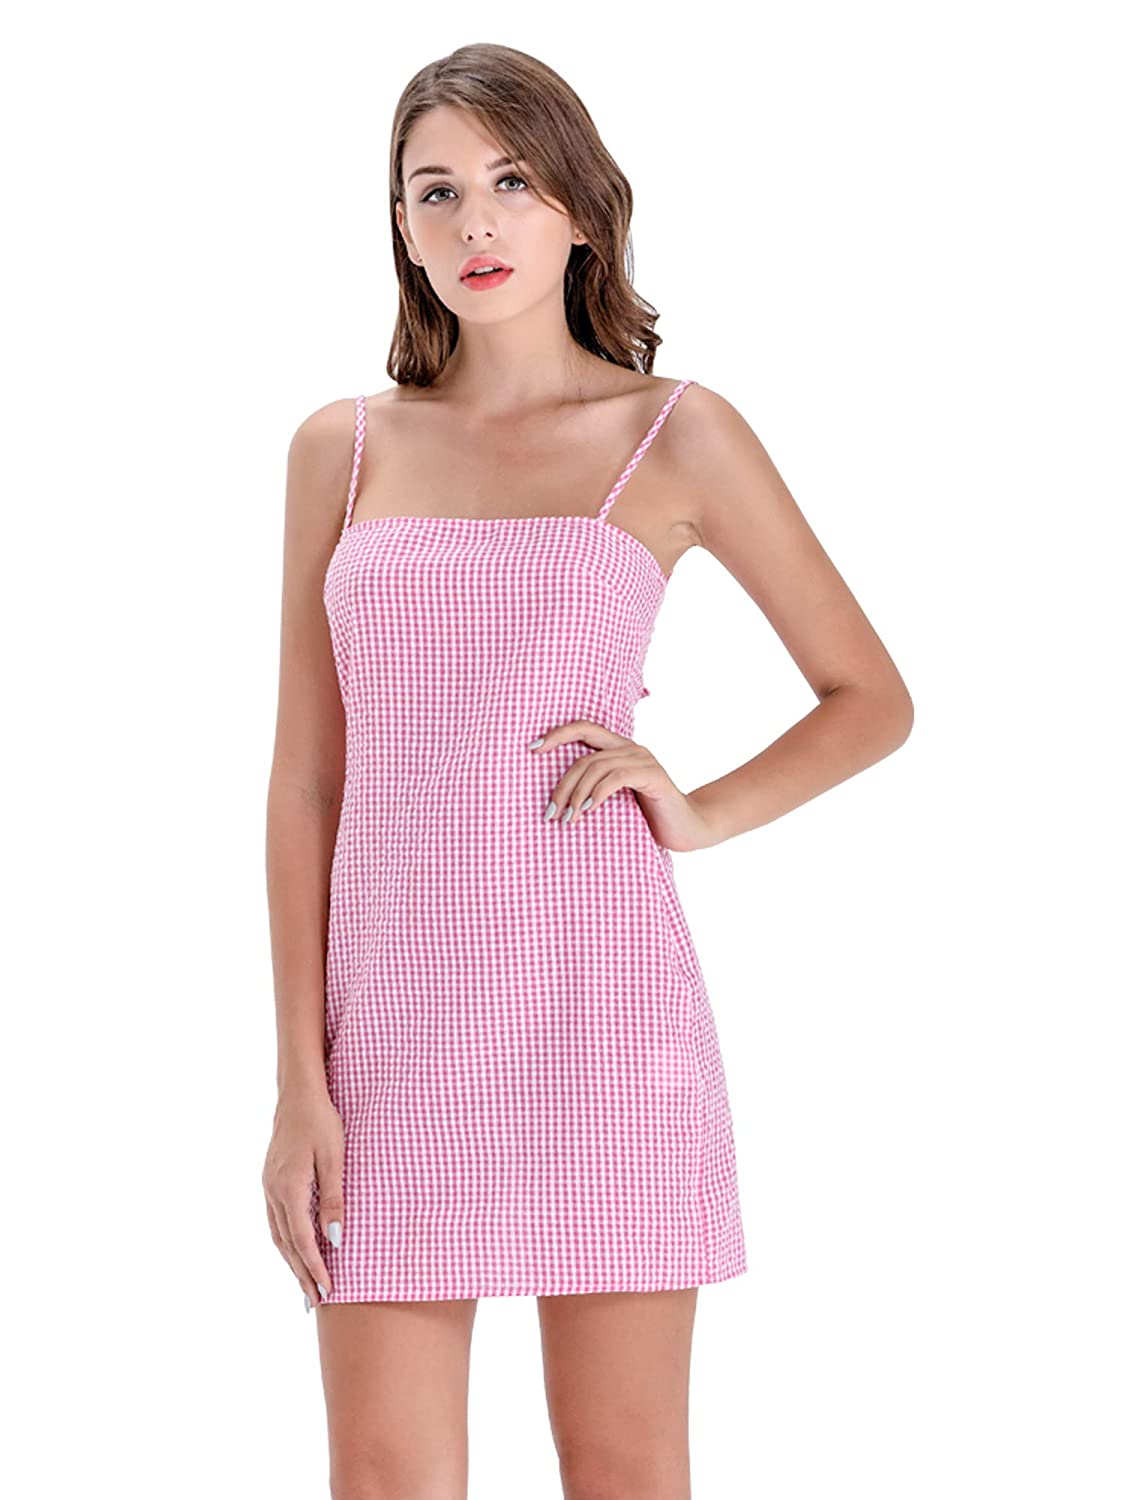 9d6d2d8679f4 BARGOOS Women's Sexy Sleeveless Spaghetti Strap Halter Plaid A-Line Short  Mini Dress Knee Length Lace Up Cami Skirt Pink: Amazon.co.uk: Clothing